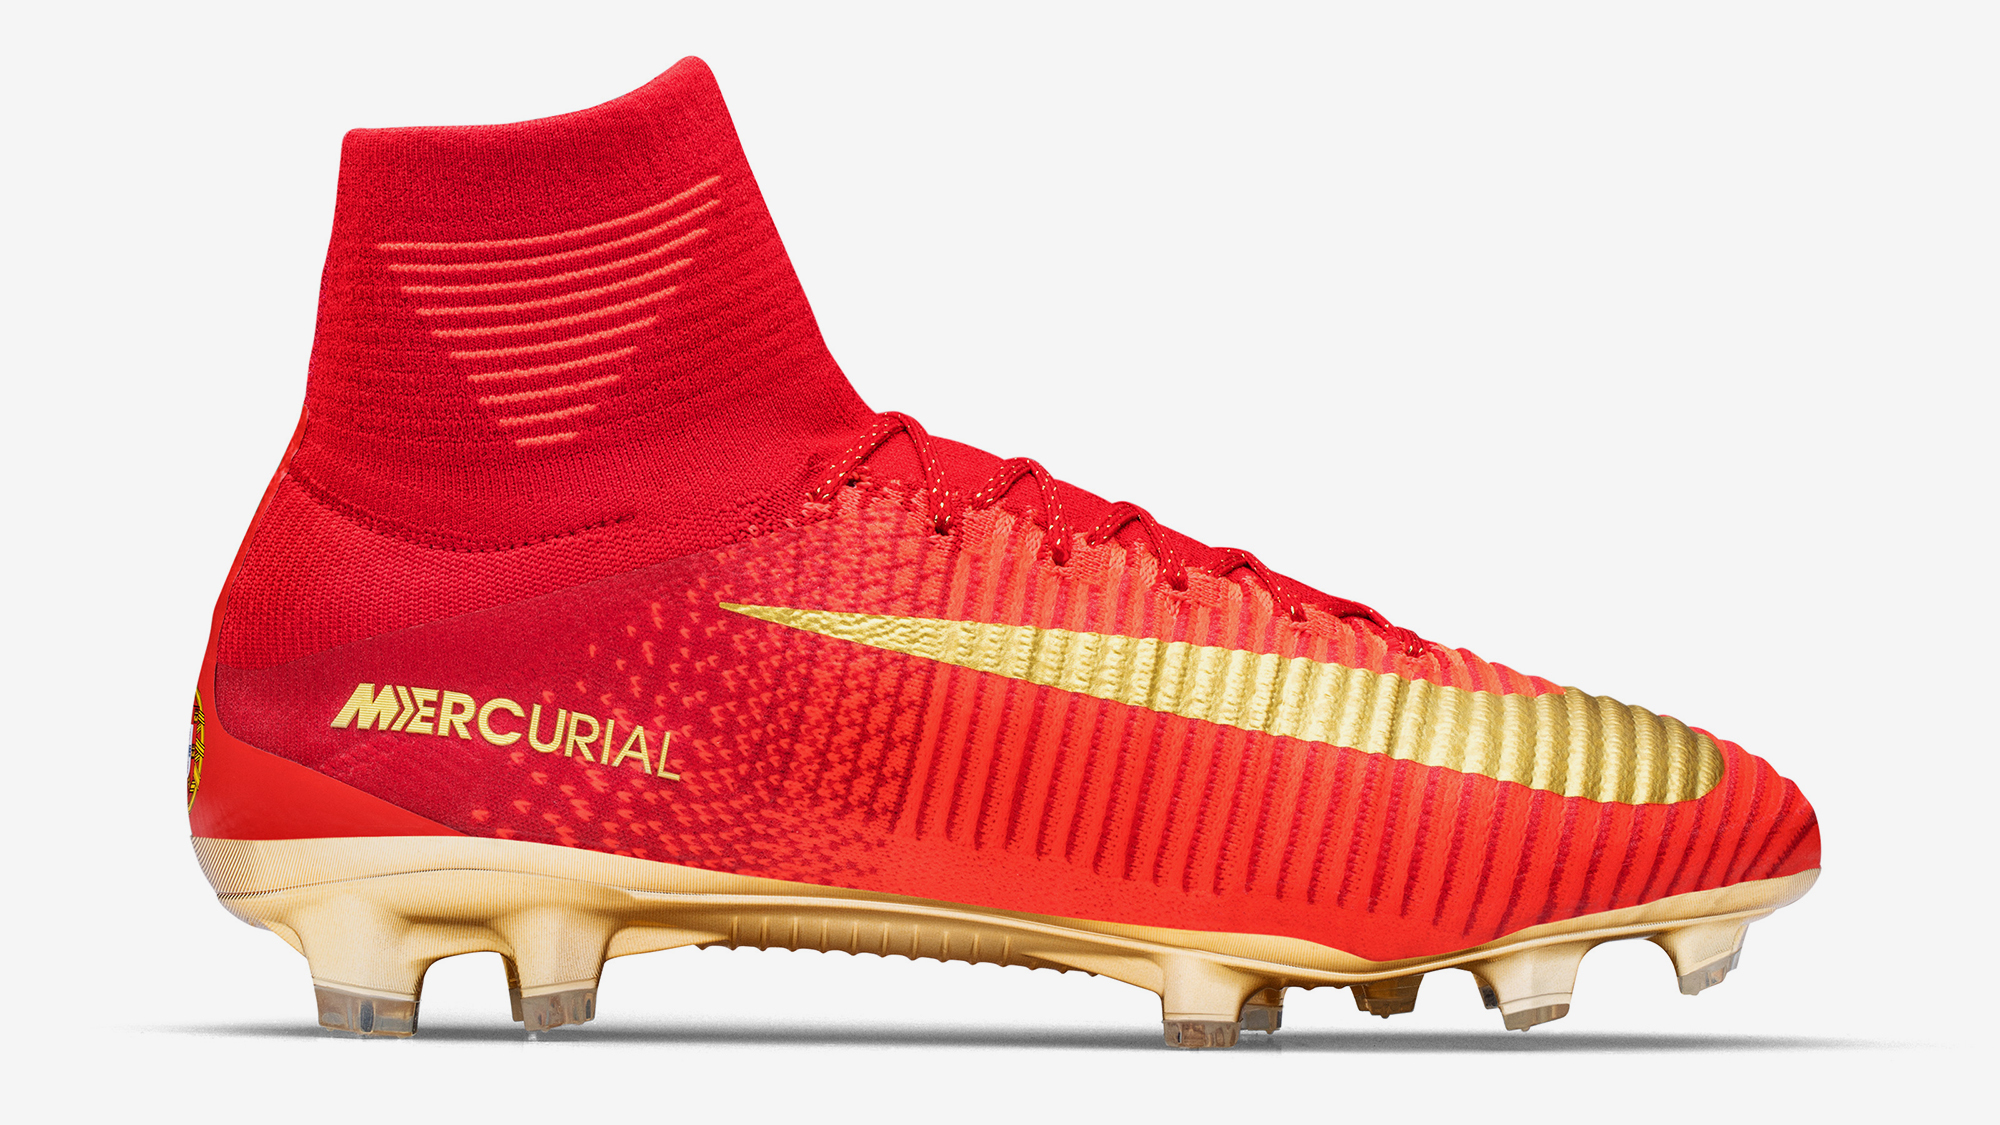 special-portugal-boots-for-cristiano-ronaldo-cr7-mercurial-campeoes3_70647